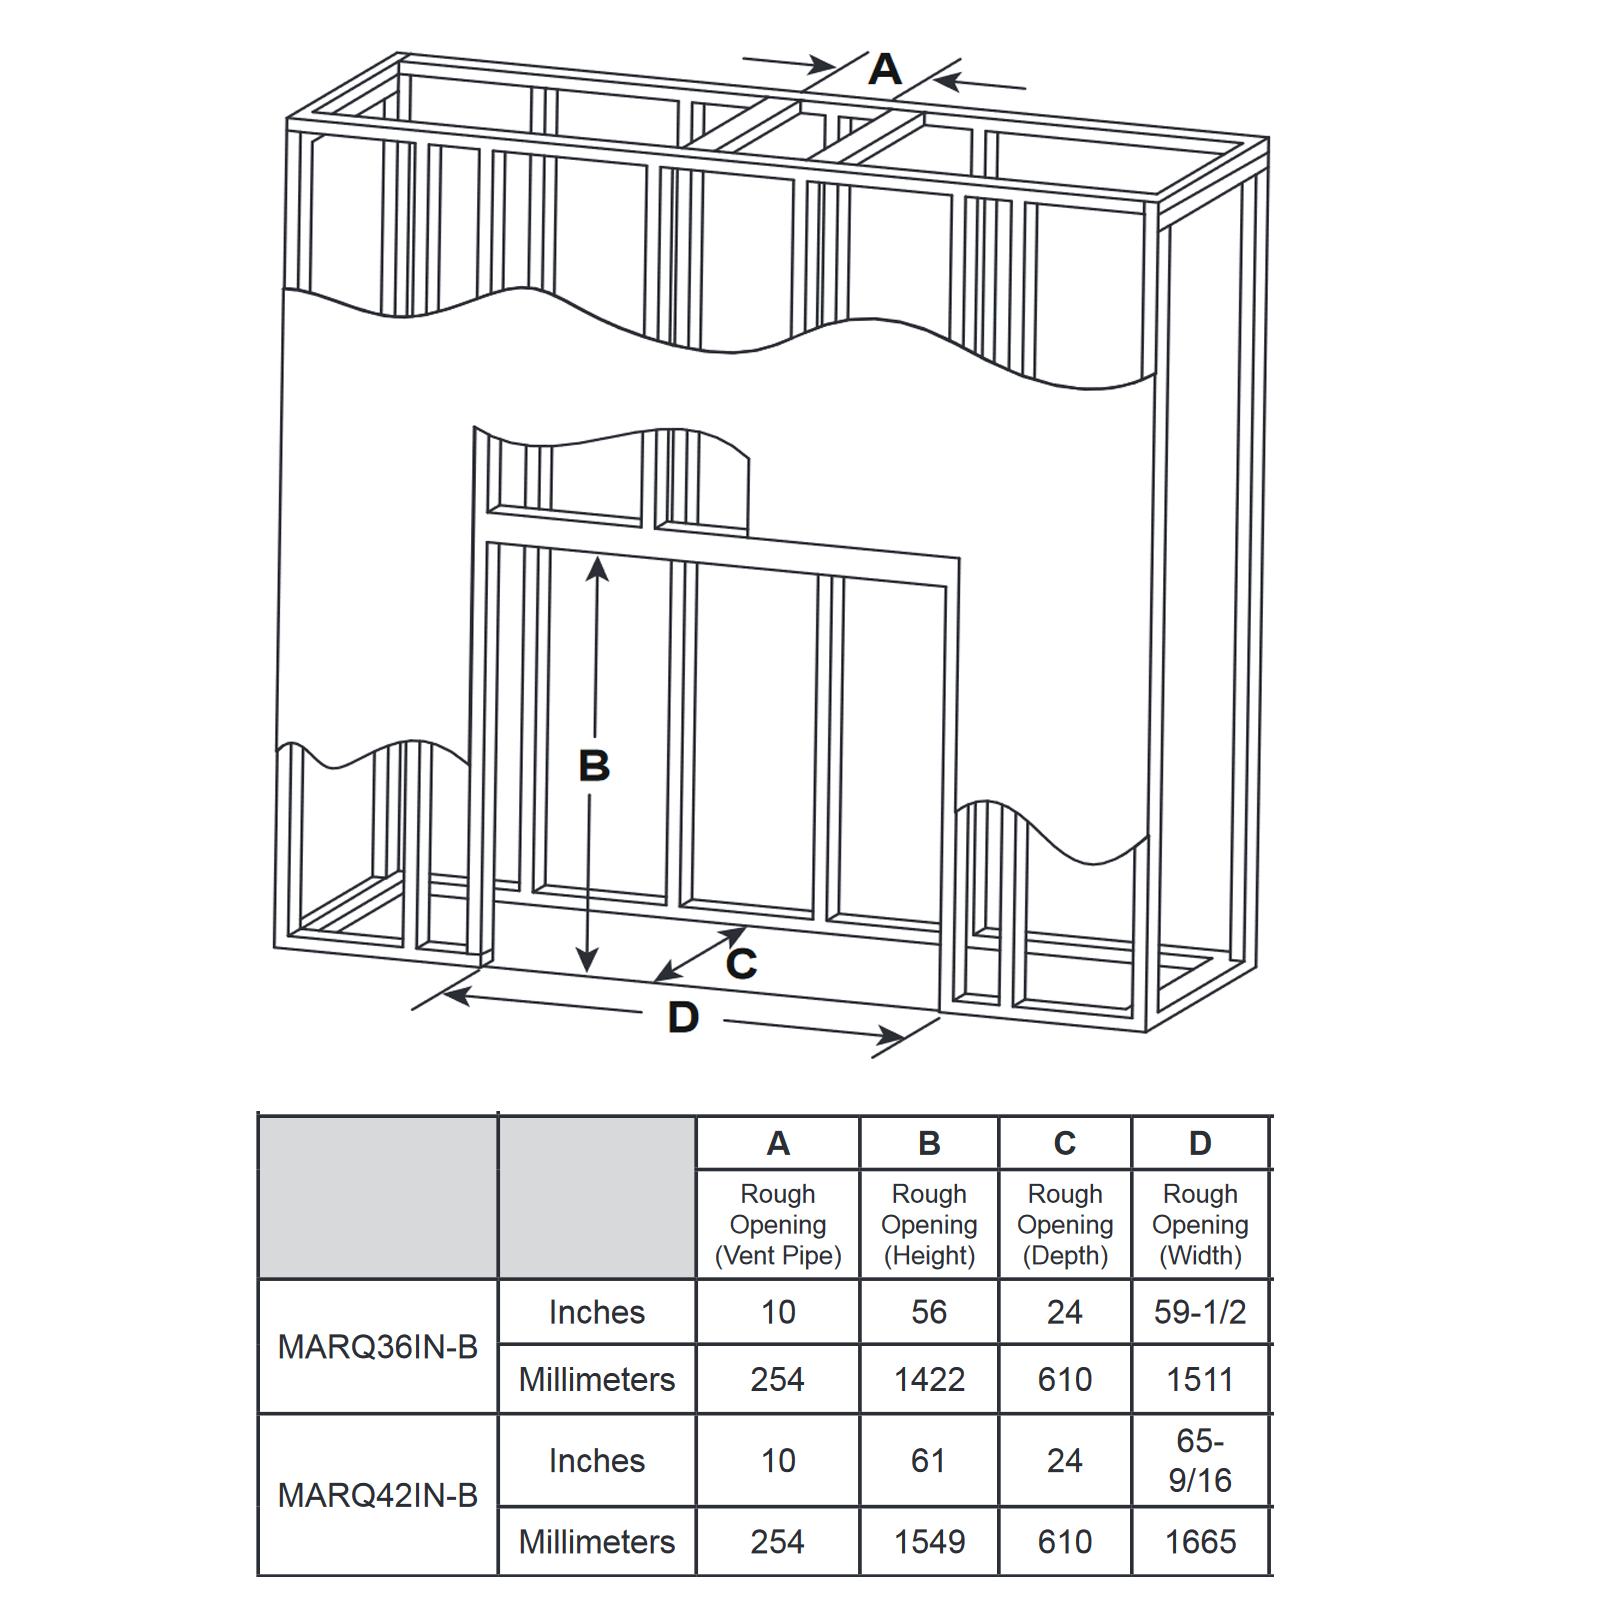 MARQ36 Technical Drawing 2